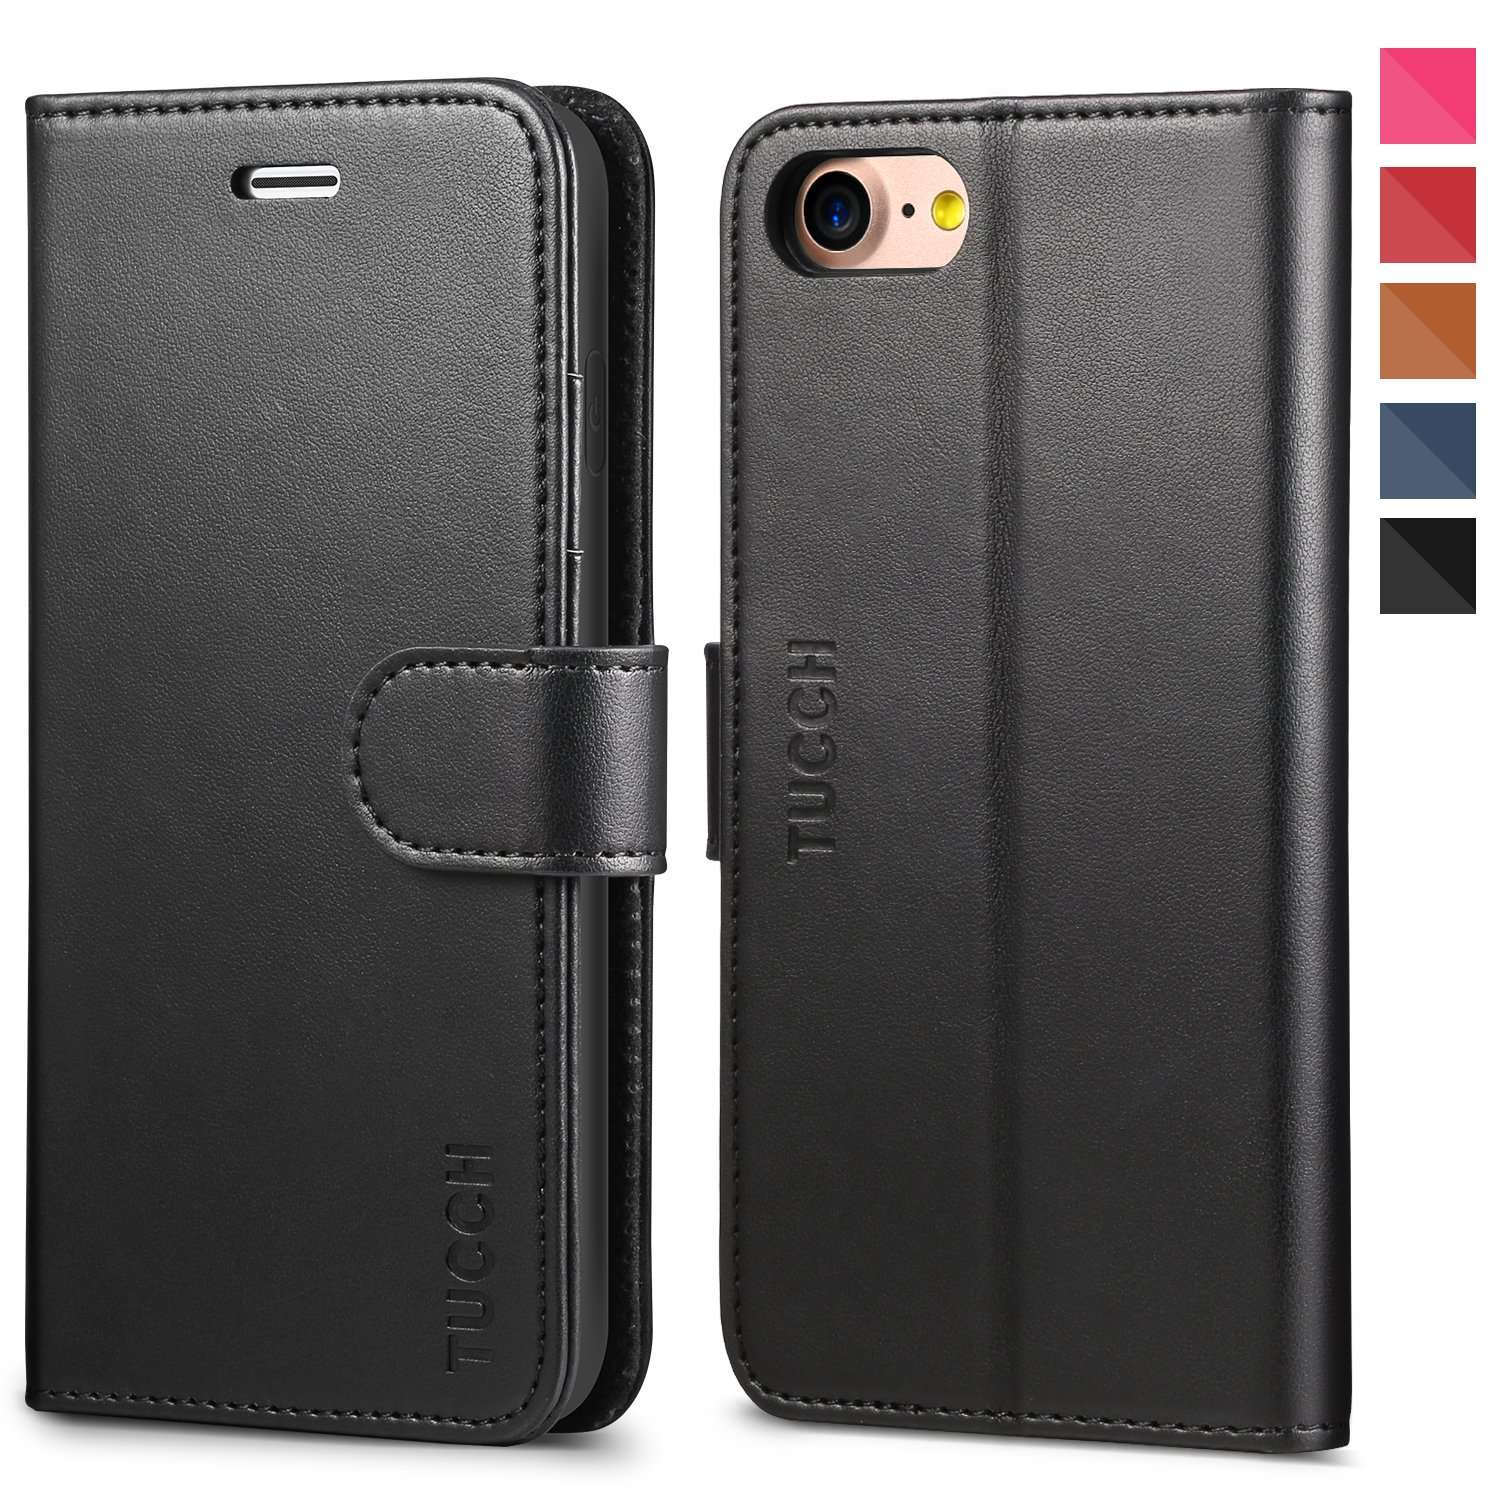 iPhone 8 Case, iPhone 7 Wallet Case, TUCCH Premium PU Leather Flip Folio Wallet Case with Card Slot, Cash Clip, Stand Holder and Magnetic Closure [TPU Shockproof Interior Protective Case], Black by TUCCH (Image #1)